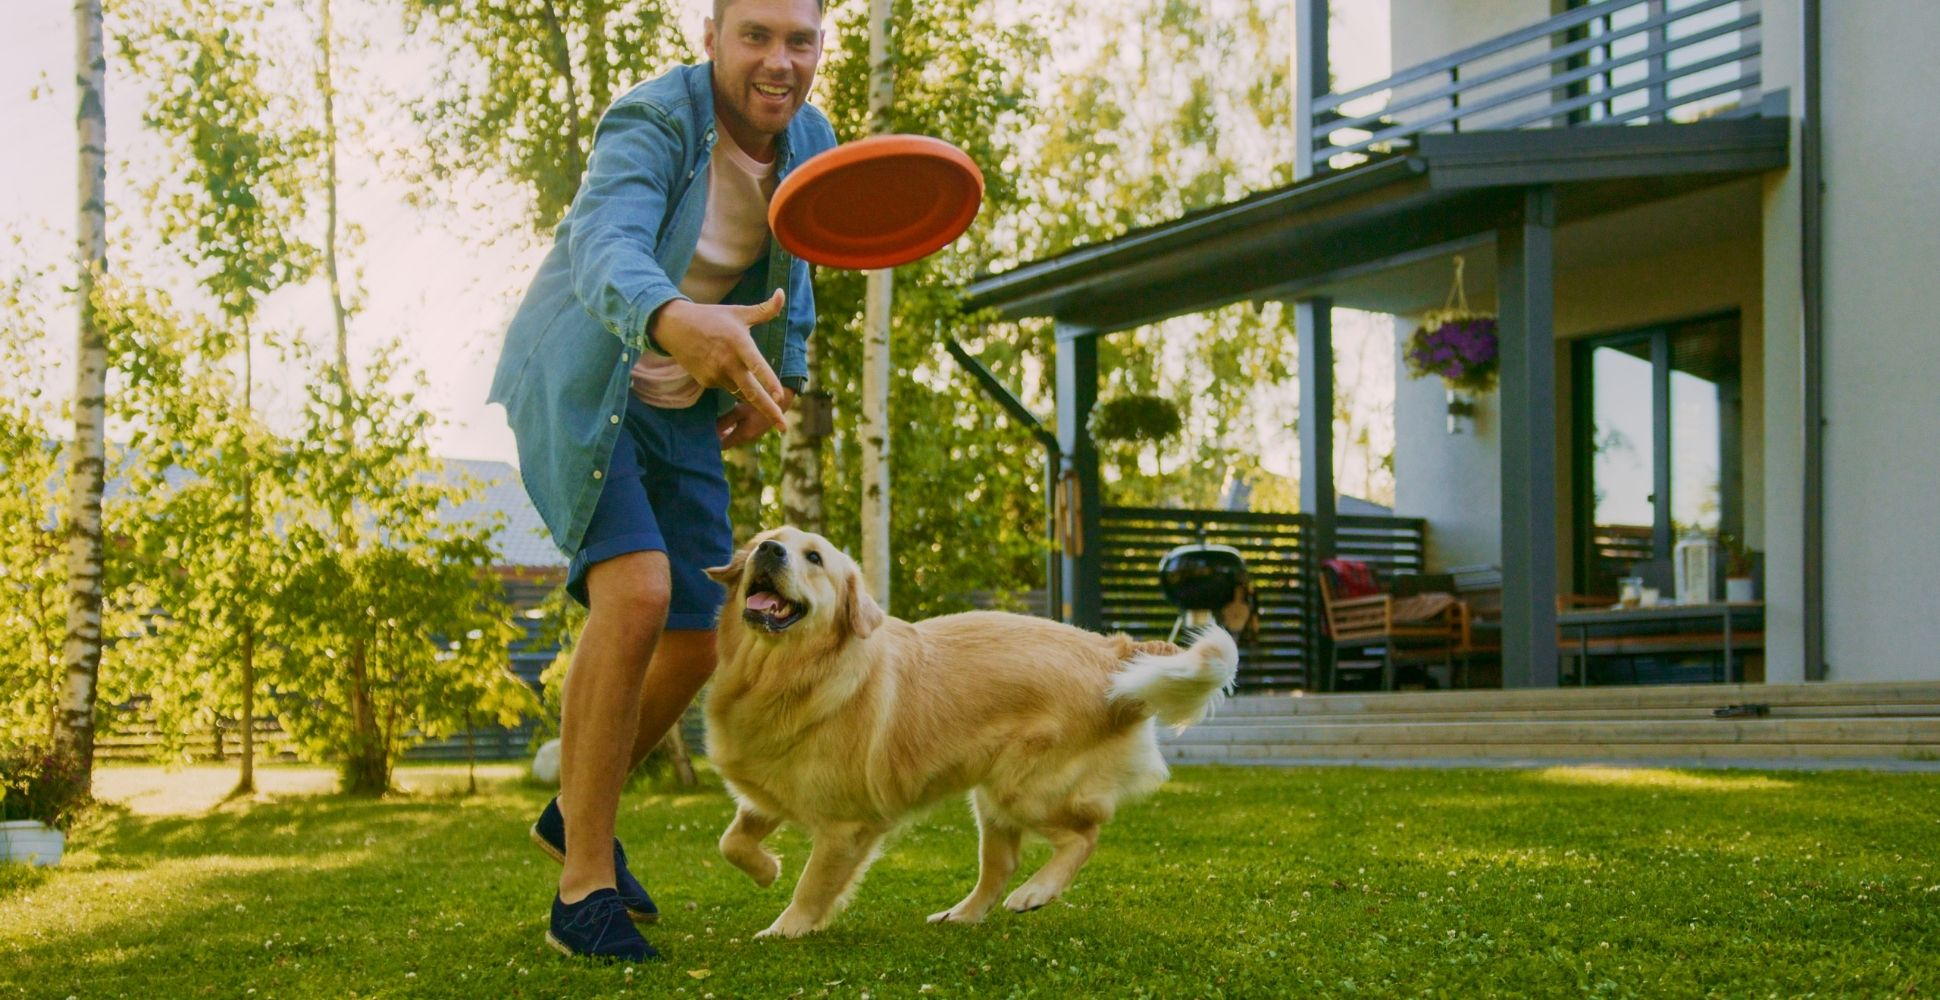 fun-activities-to-do-with-your-dog